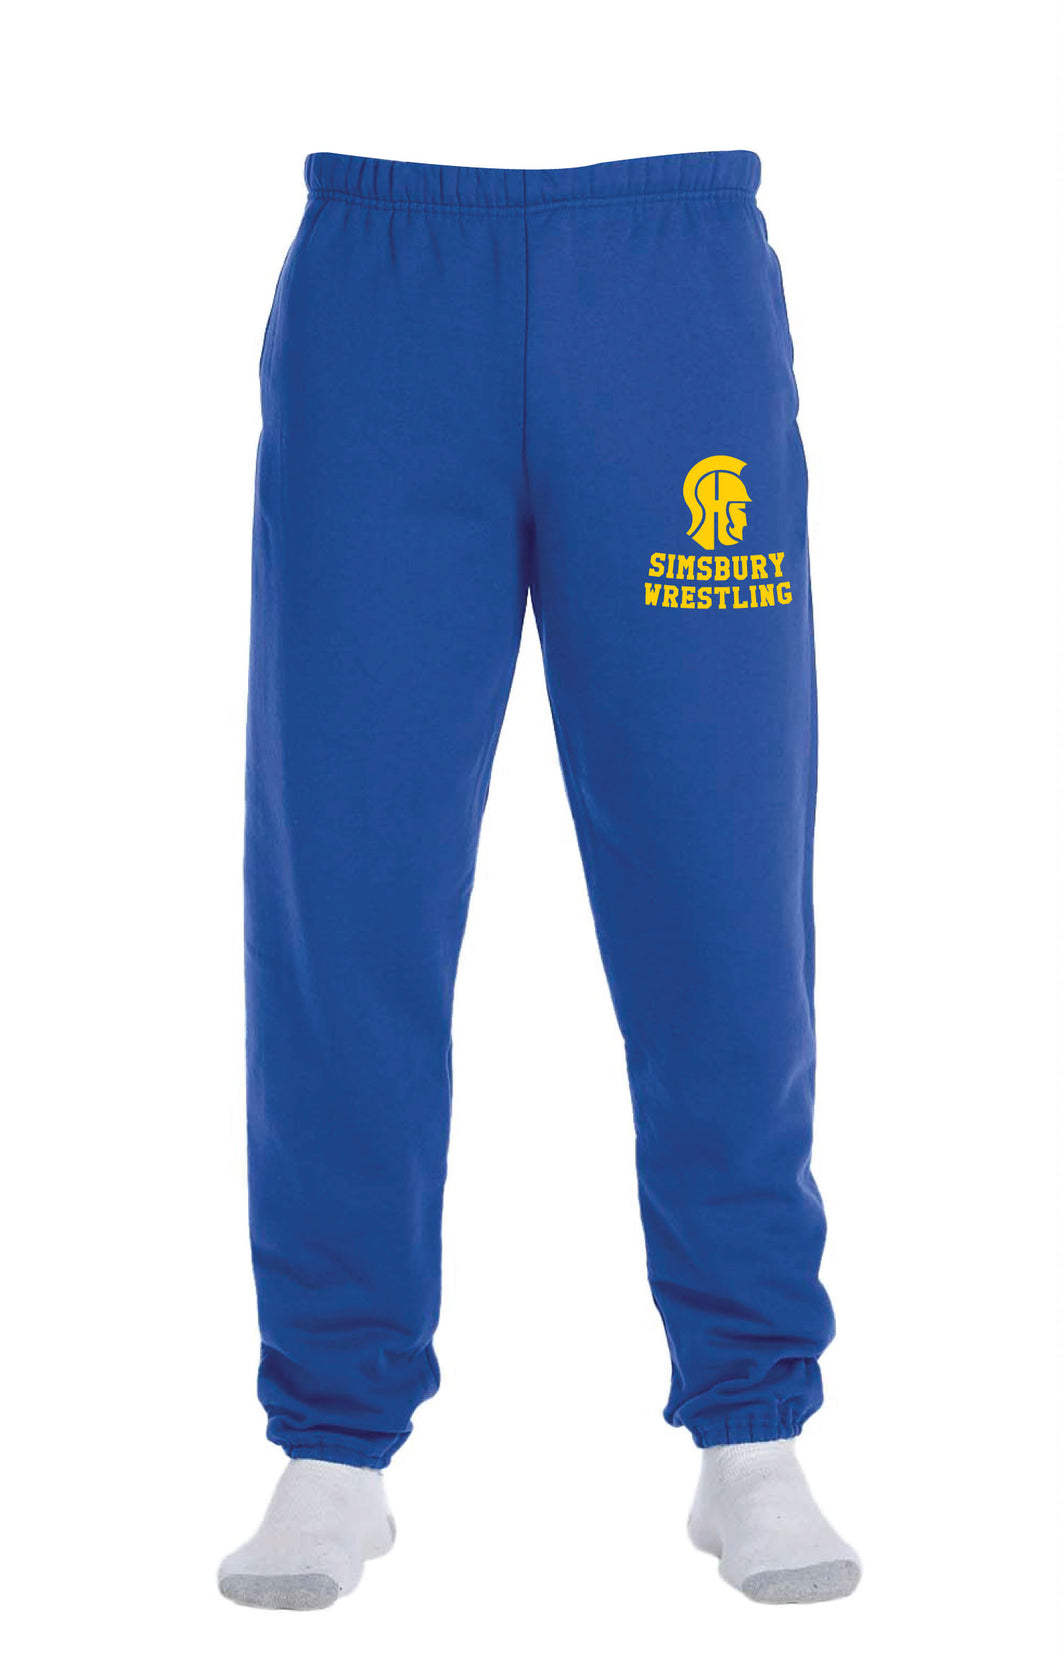 Simsbury Wrestling Cotton Sweatpants - 5KounT